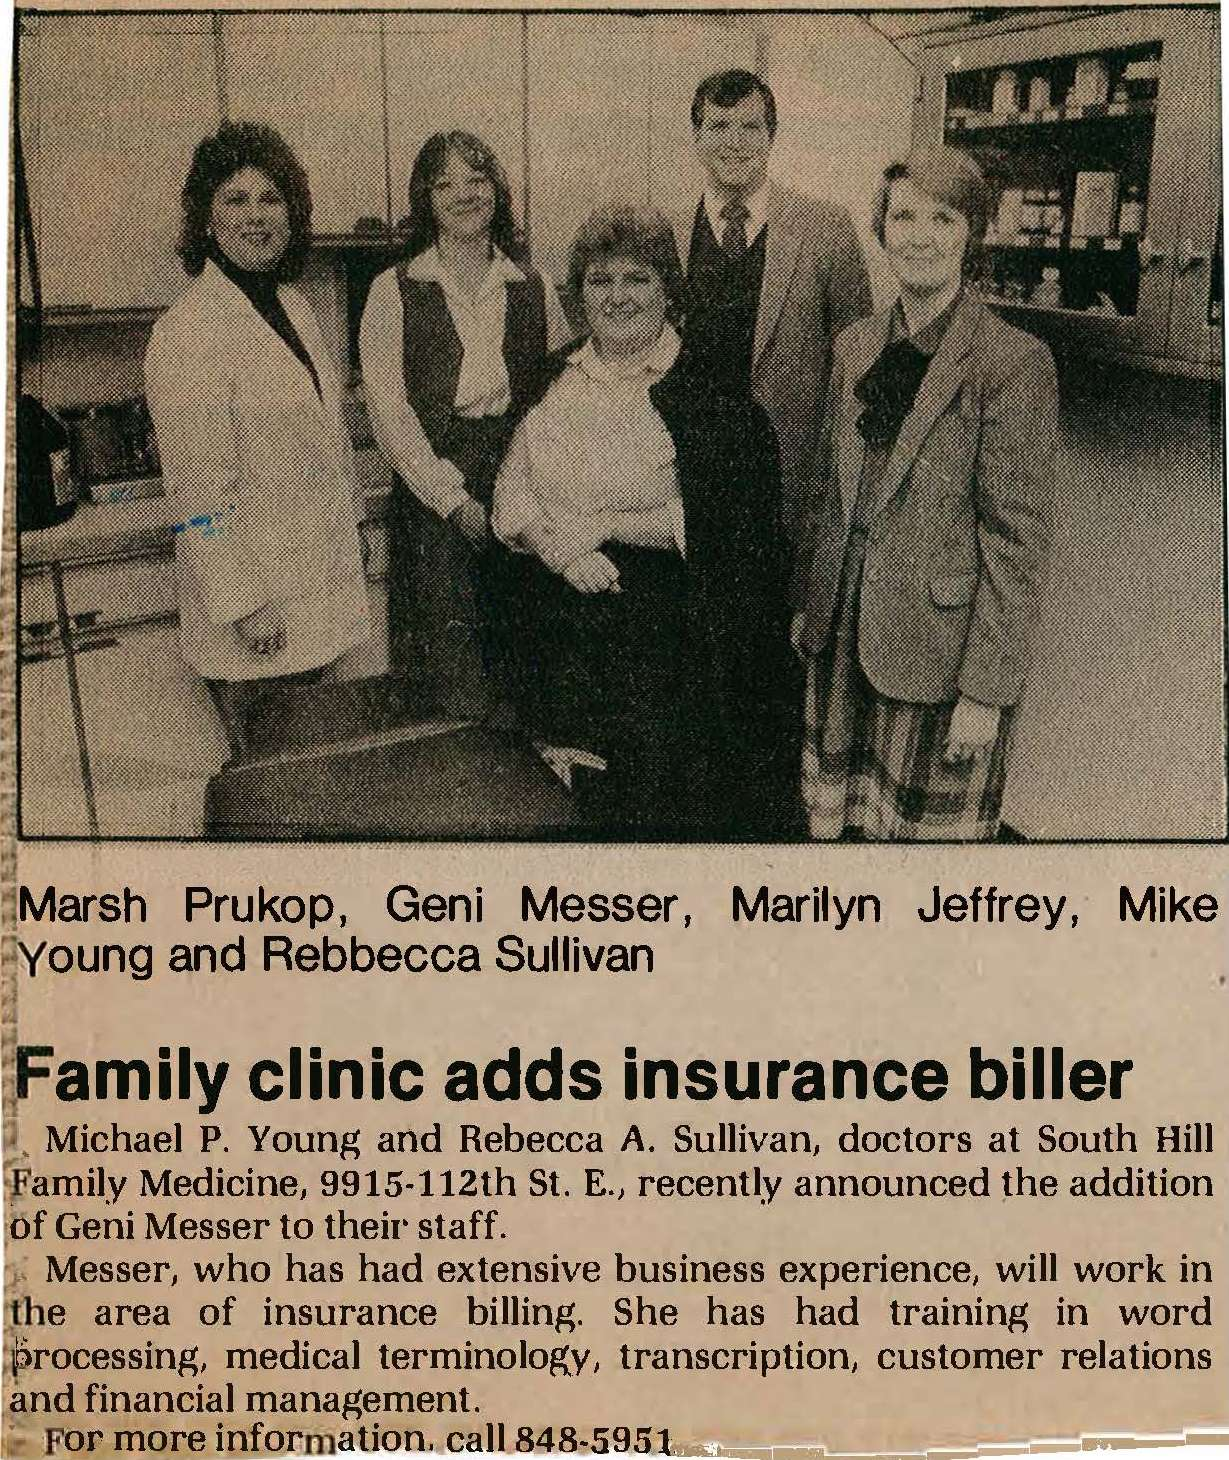 "An advertisement for South Hill Family Medicine in the Tacoma News Tribune, the headline reads, ""Family clinic adds insurance biller"" and the picture contains Marsh Prukop, Geni Messer, Marilyn Jeffrey, Mike Young and Rebecca Sullivan"